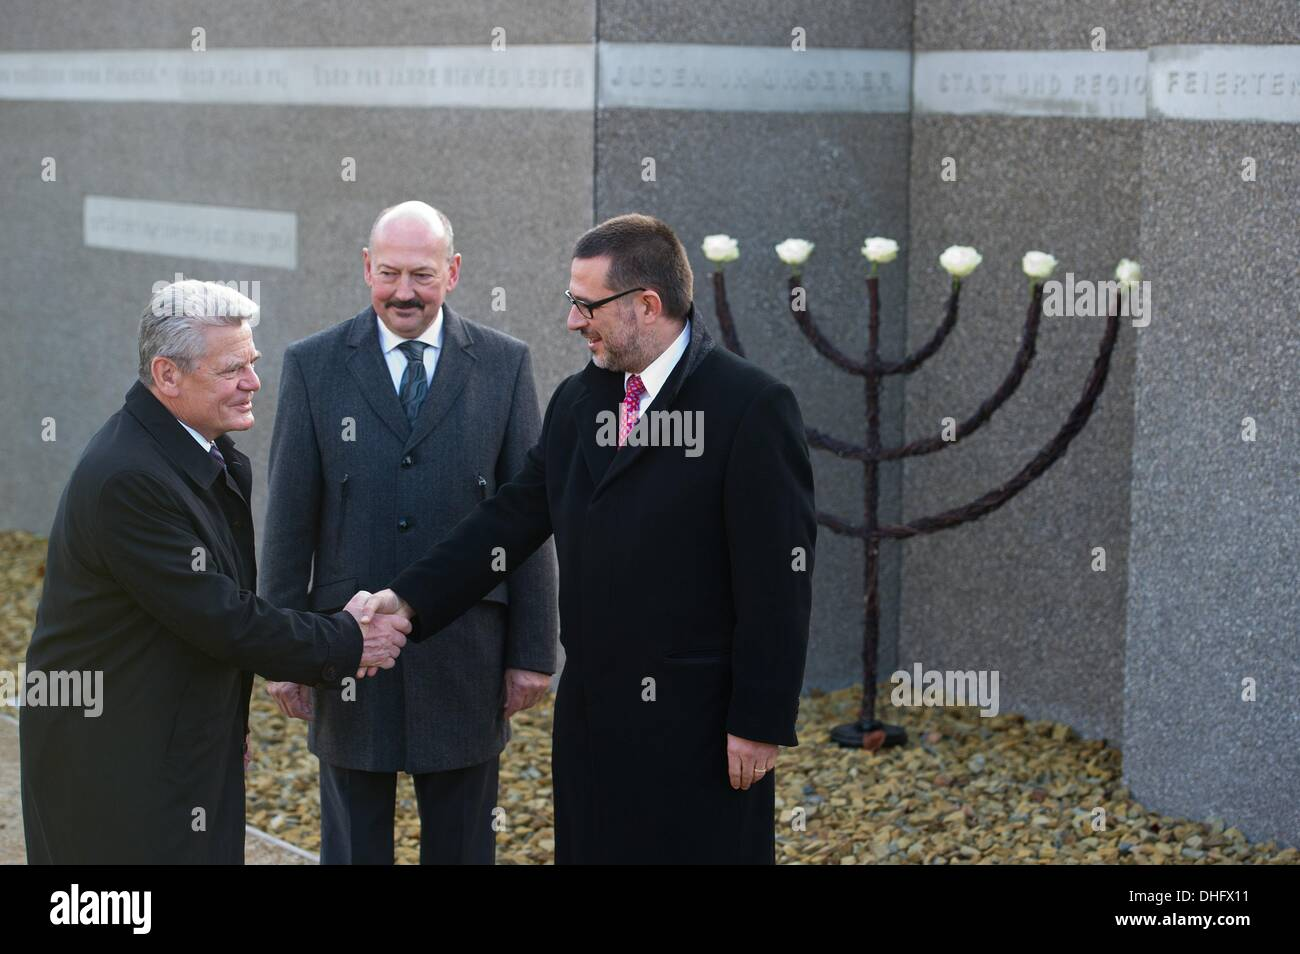 Eberswalde, Germany. 09th Nov, 2013. General secreatary of the Central Council of Jews in Germany Stephan J. Kramer (R), Federal President Joachim Gauck (L) and Eberswalde's mayor Friedhelm Boginski stand in front of the memorial 'Wachsen mit Erinnerung' - 'Grow with Memory' to commemorate the Crystal Night 75 years ago in Eberswalde, Germany, 09 November 2013. Photo: PATRICK PLEUL/dpa/Alamy Live News - Stock Image